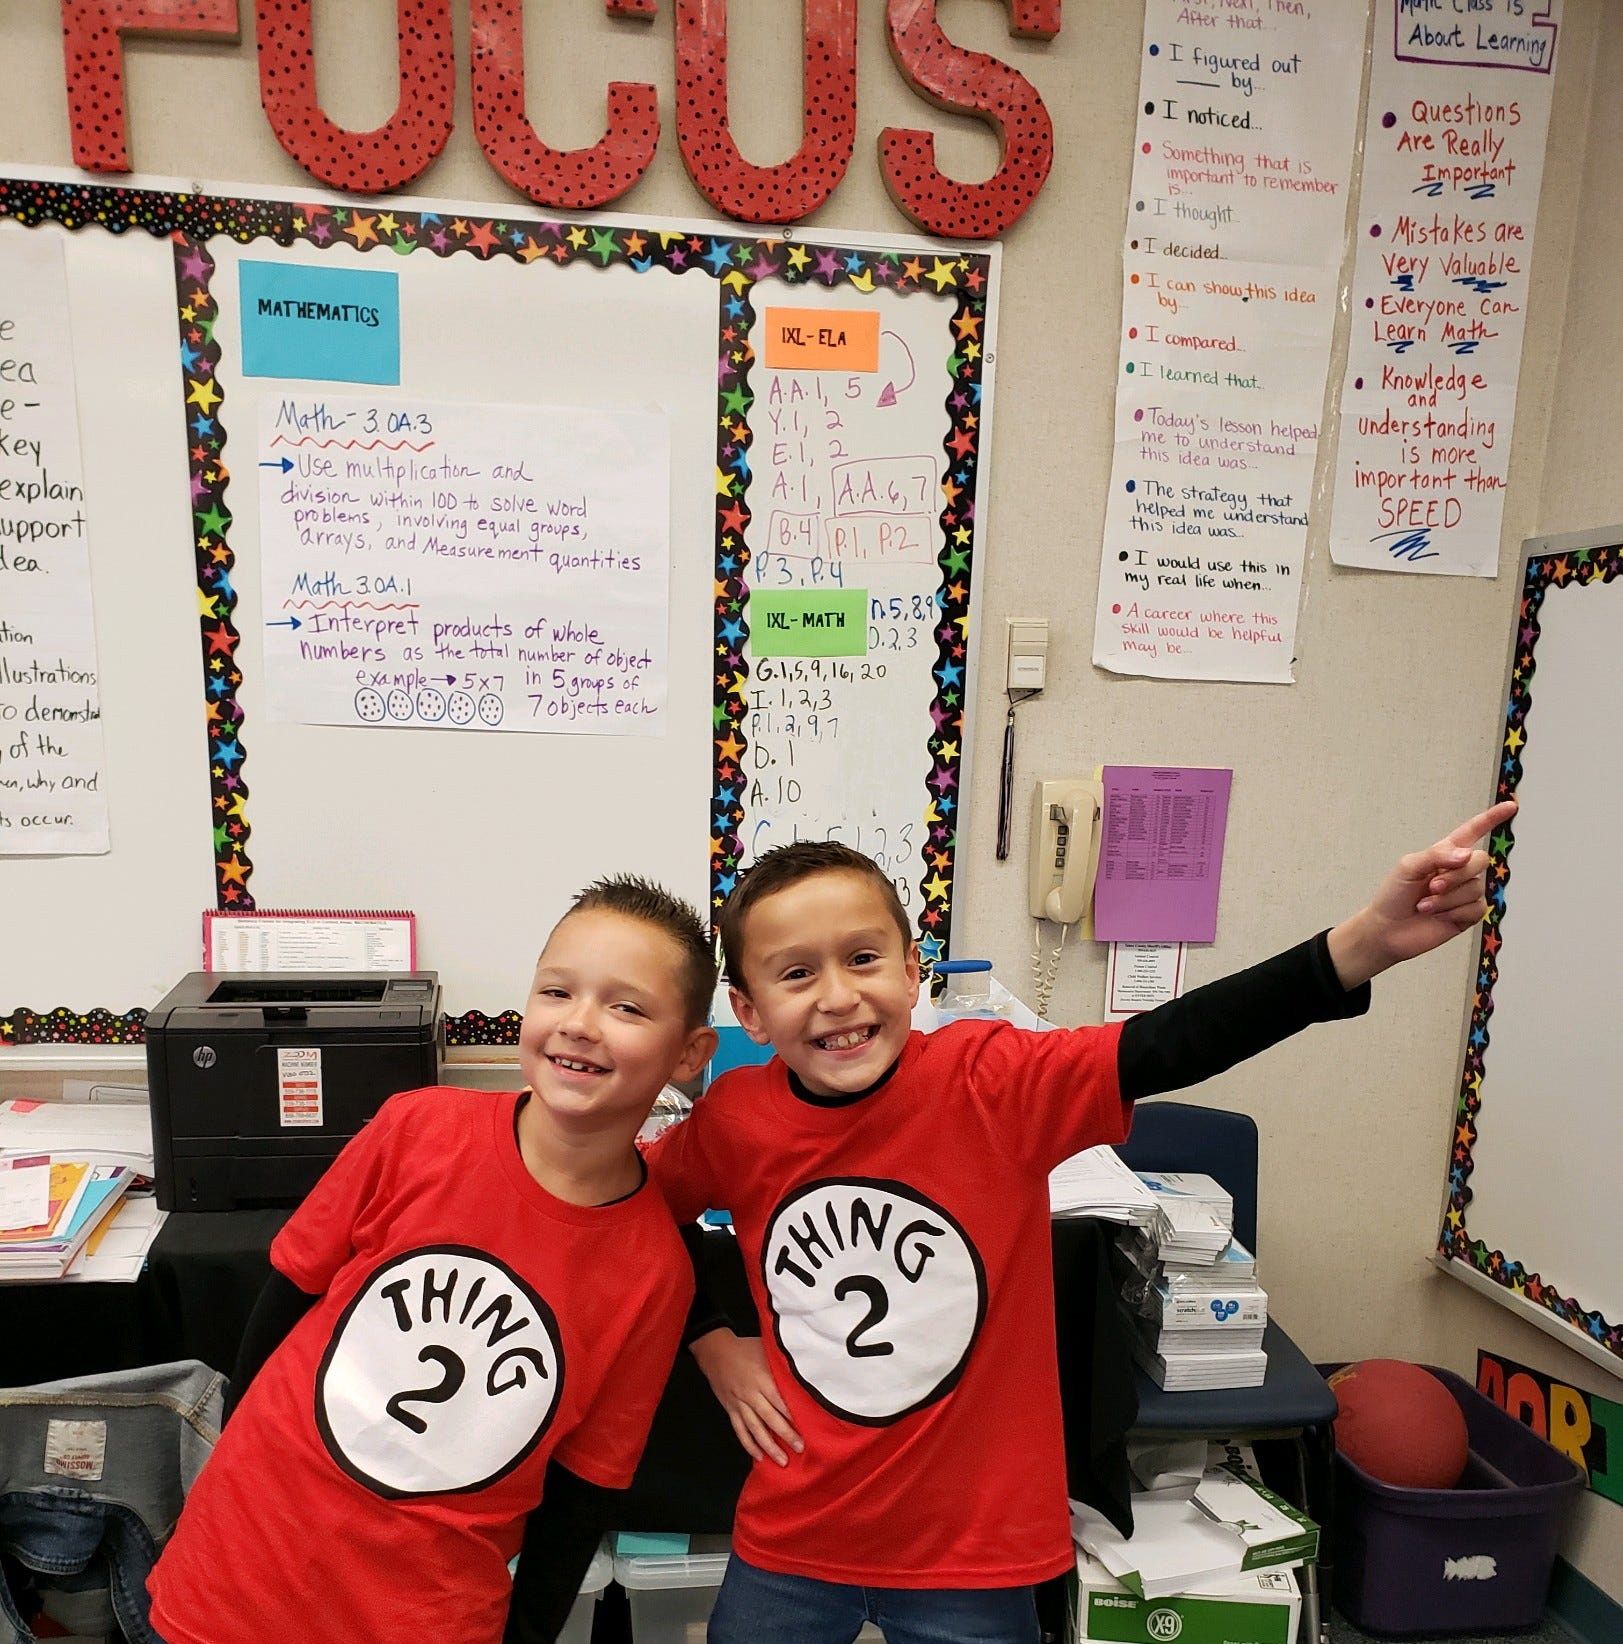 9-year-old Visalia boy honored after saving friend's life at school